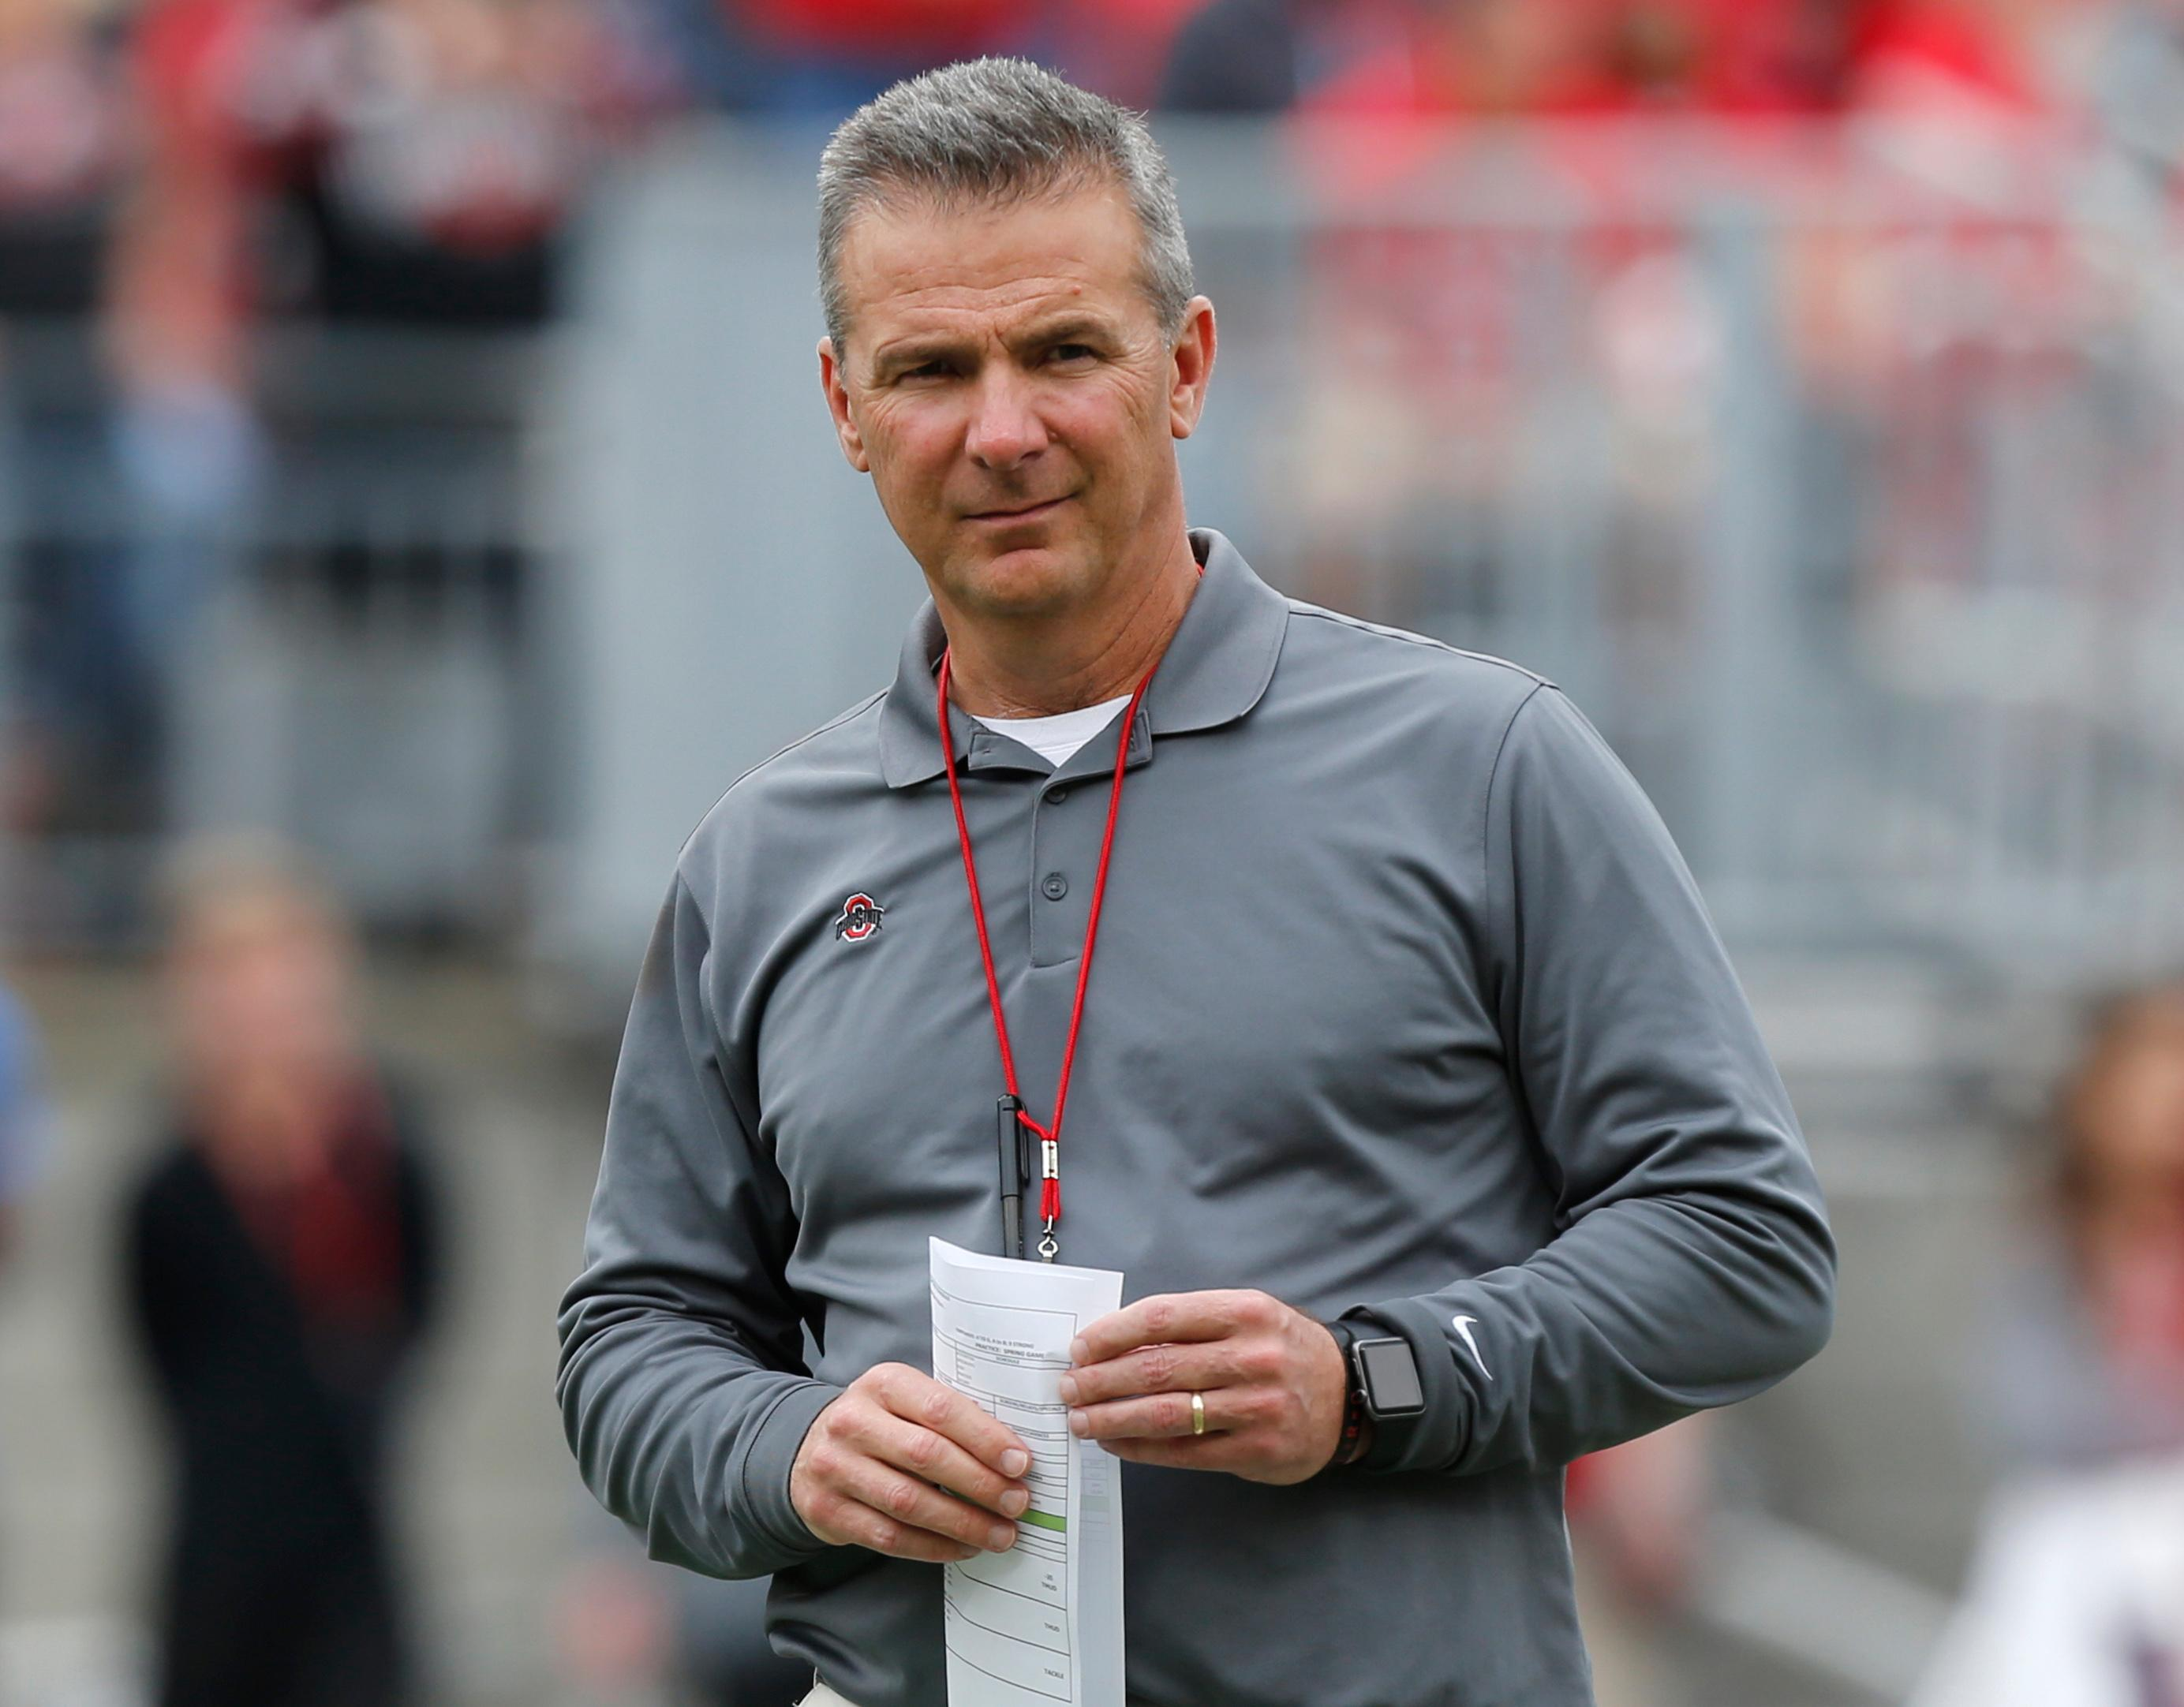 Ohio State S Urban Meyer Put On Leave Investigation Opened The